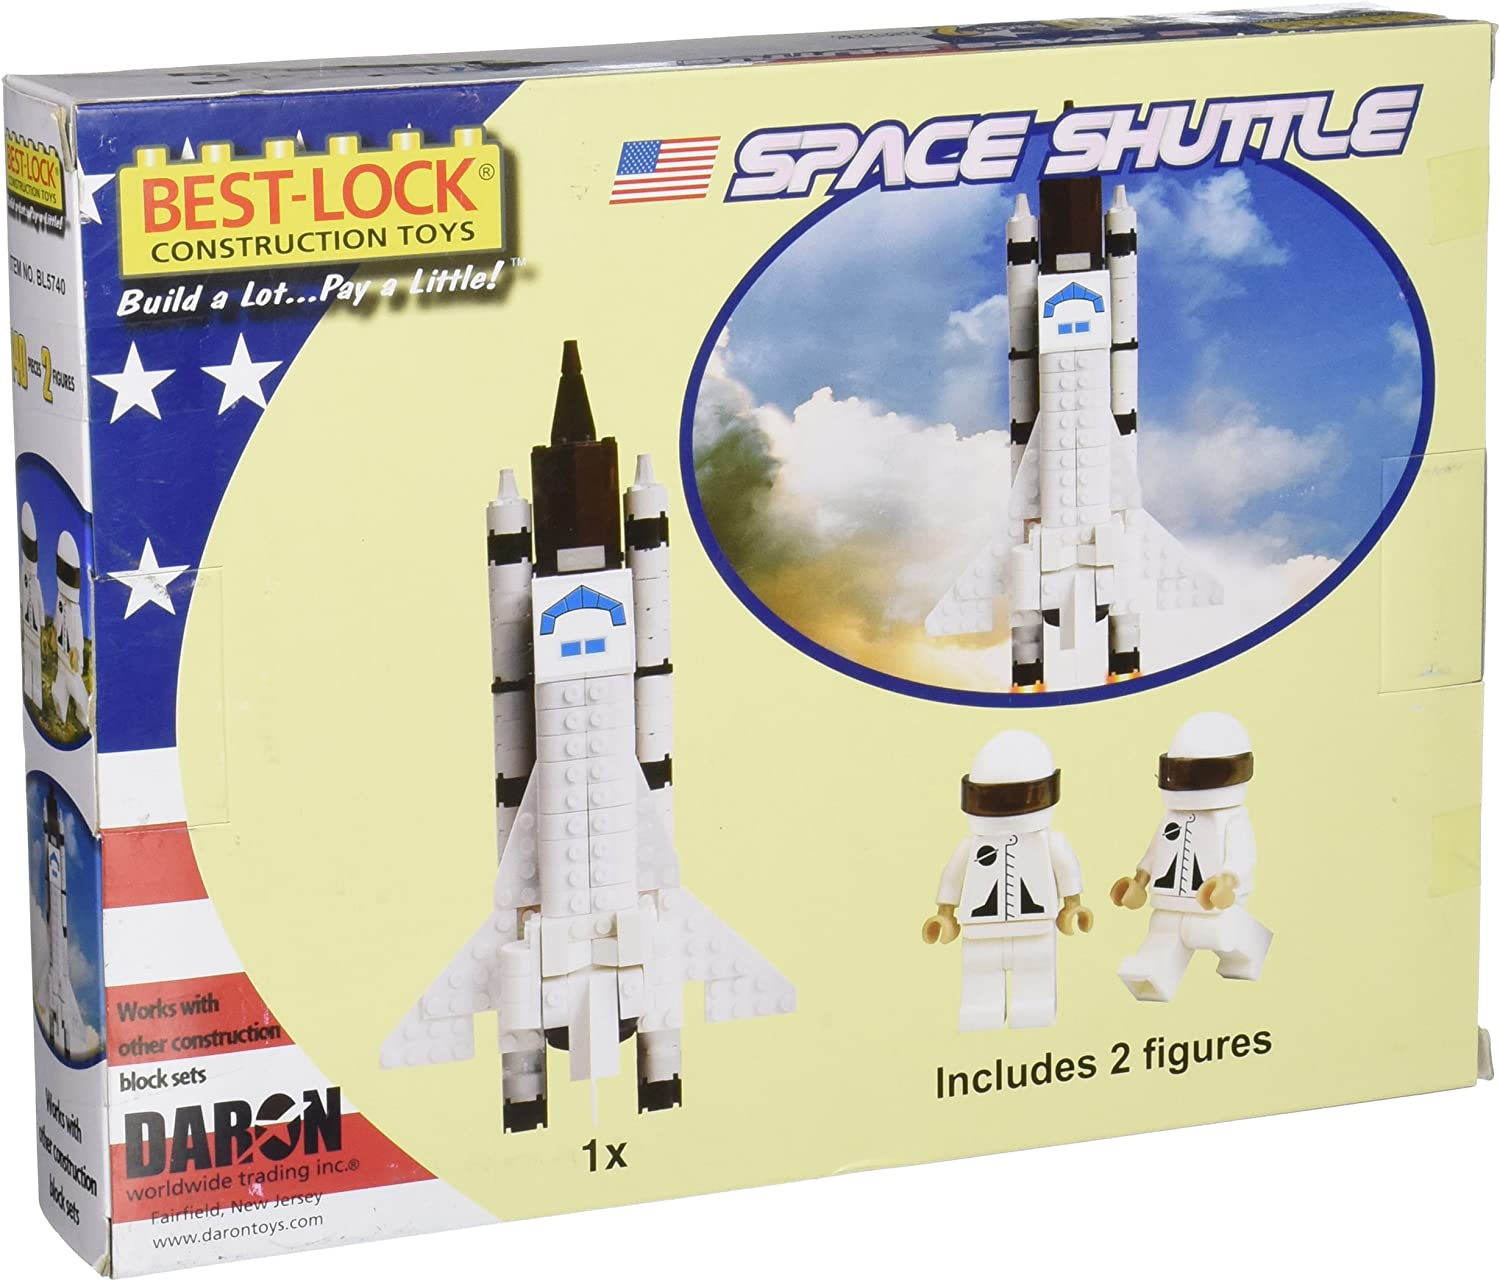 Amazon Com Space Shuttle 140 Piece Best Lock Construction Toy With Action Figure Toys Games